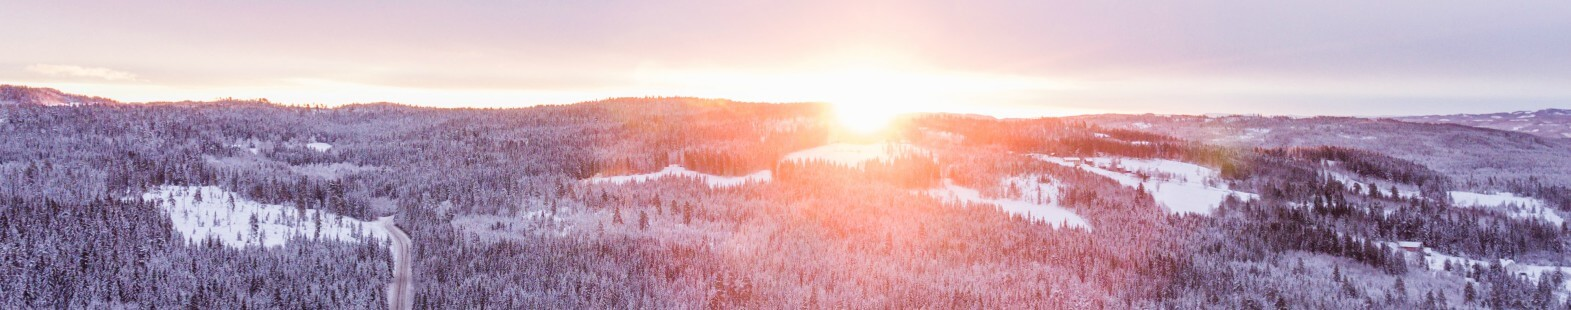 Image shows a snowy tree filled landscape with the setting sun on the horizon